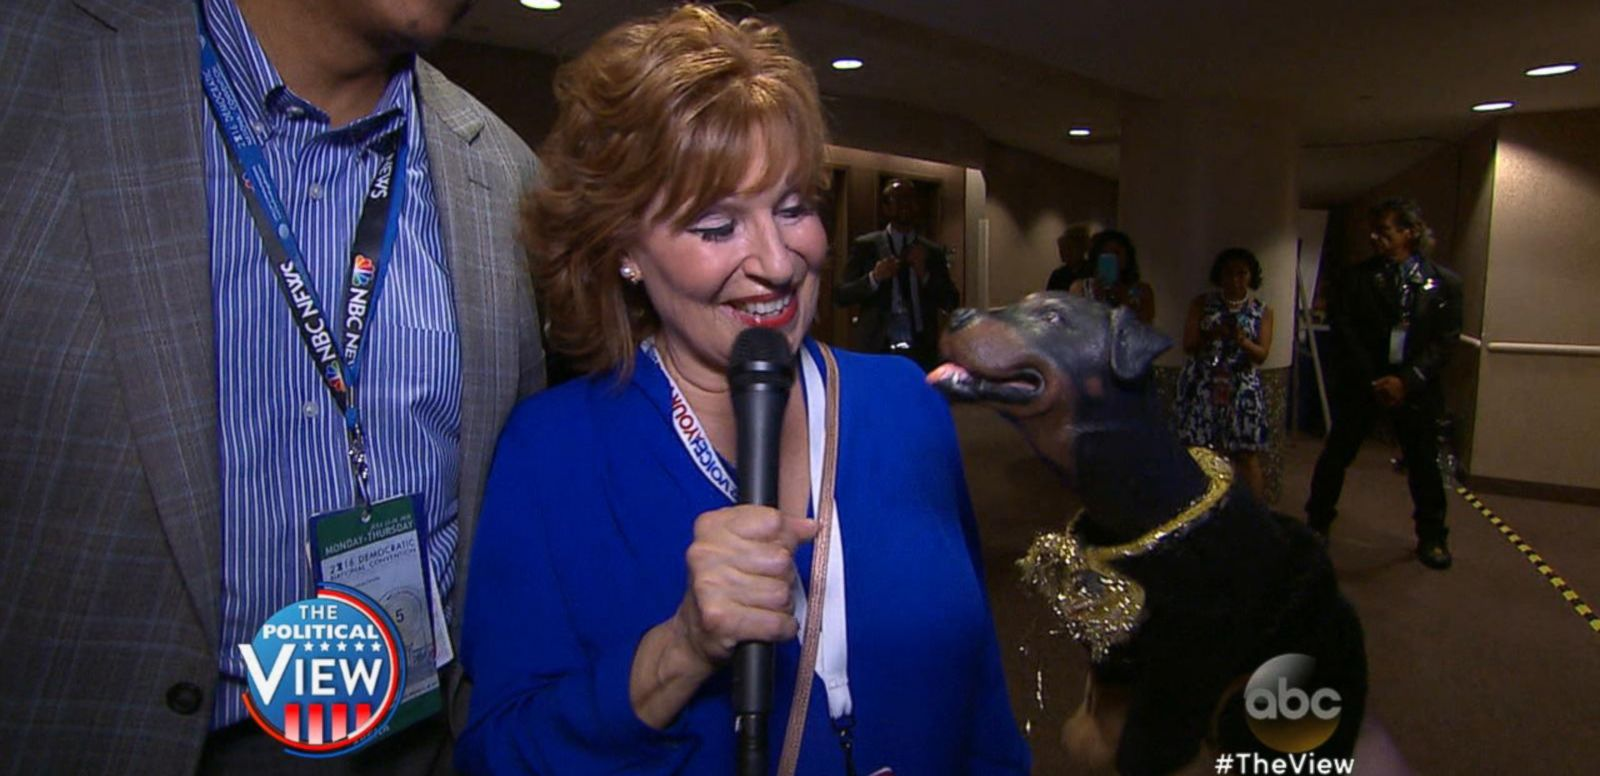 VIDEO: Joy Behar Talks to Nancy Pelosi, Delegates at DNC